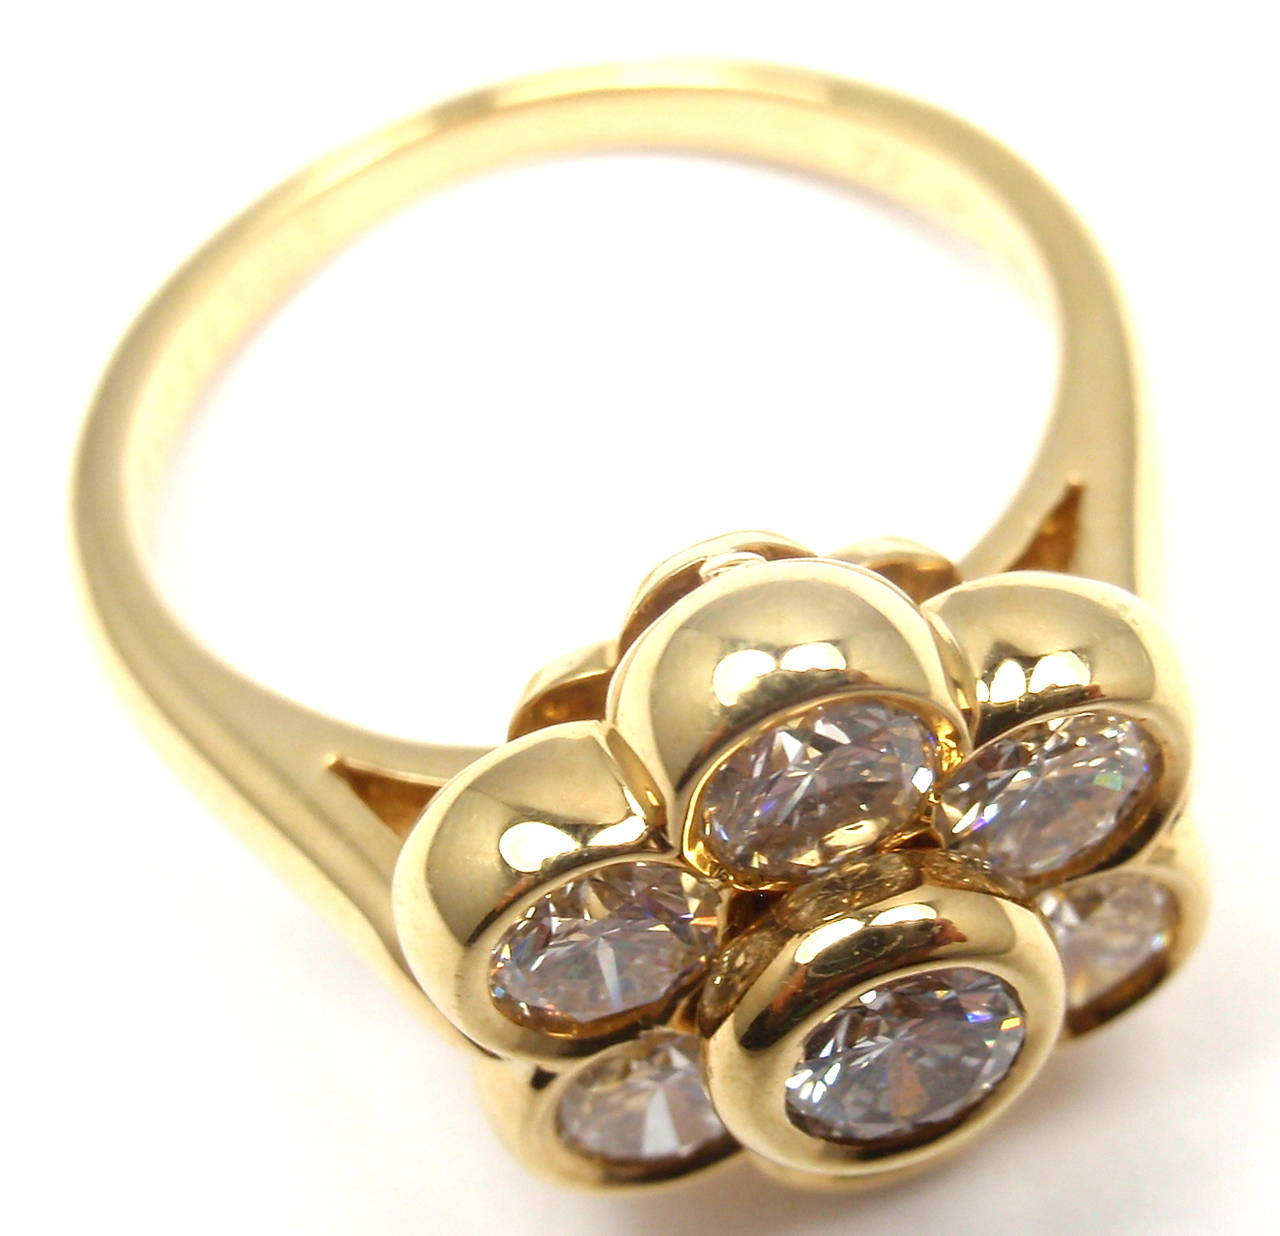 Van Cleef & Arpels Diamond Yellow Gold Fleurette Flower Ring For Sale 3